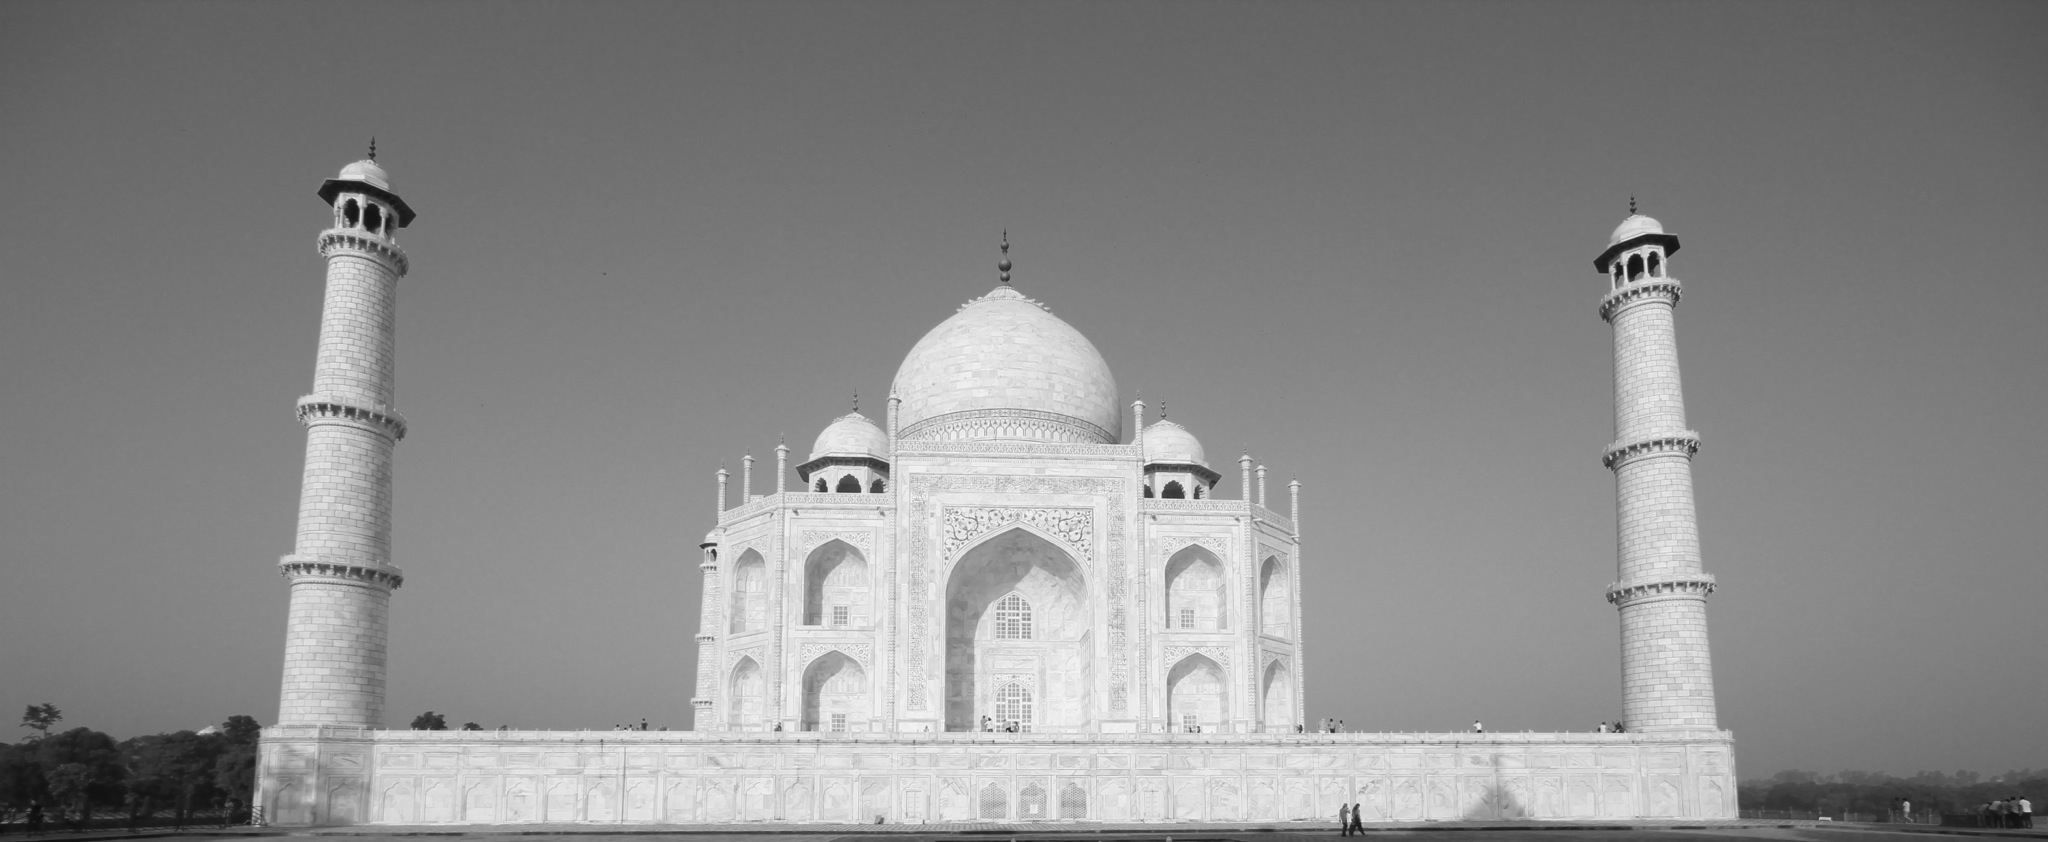 descriptive essay on taj mahal